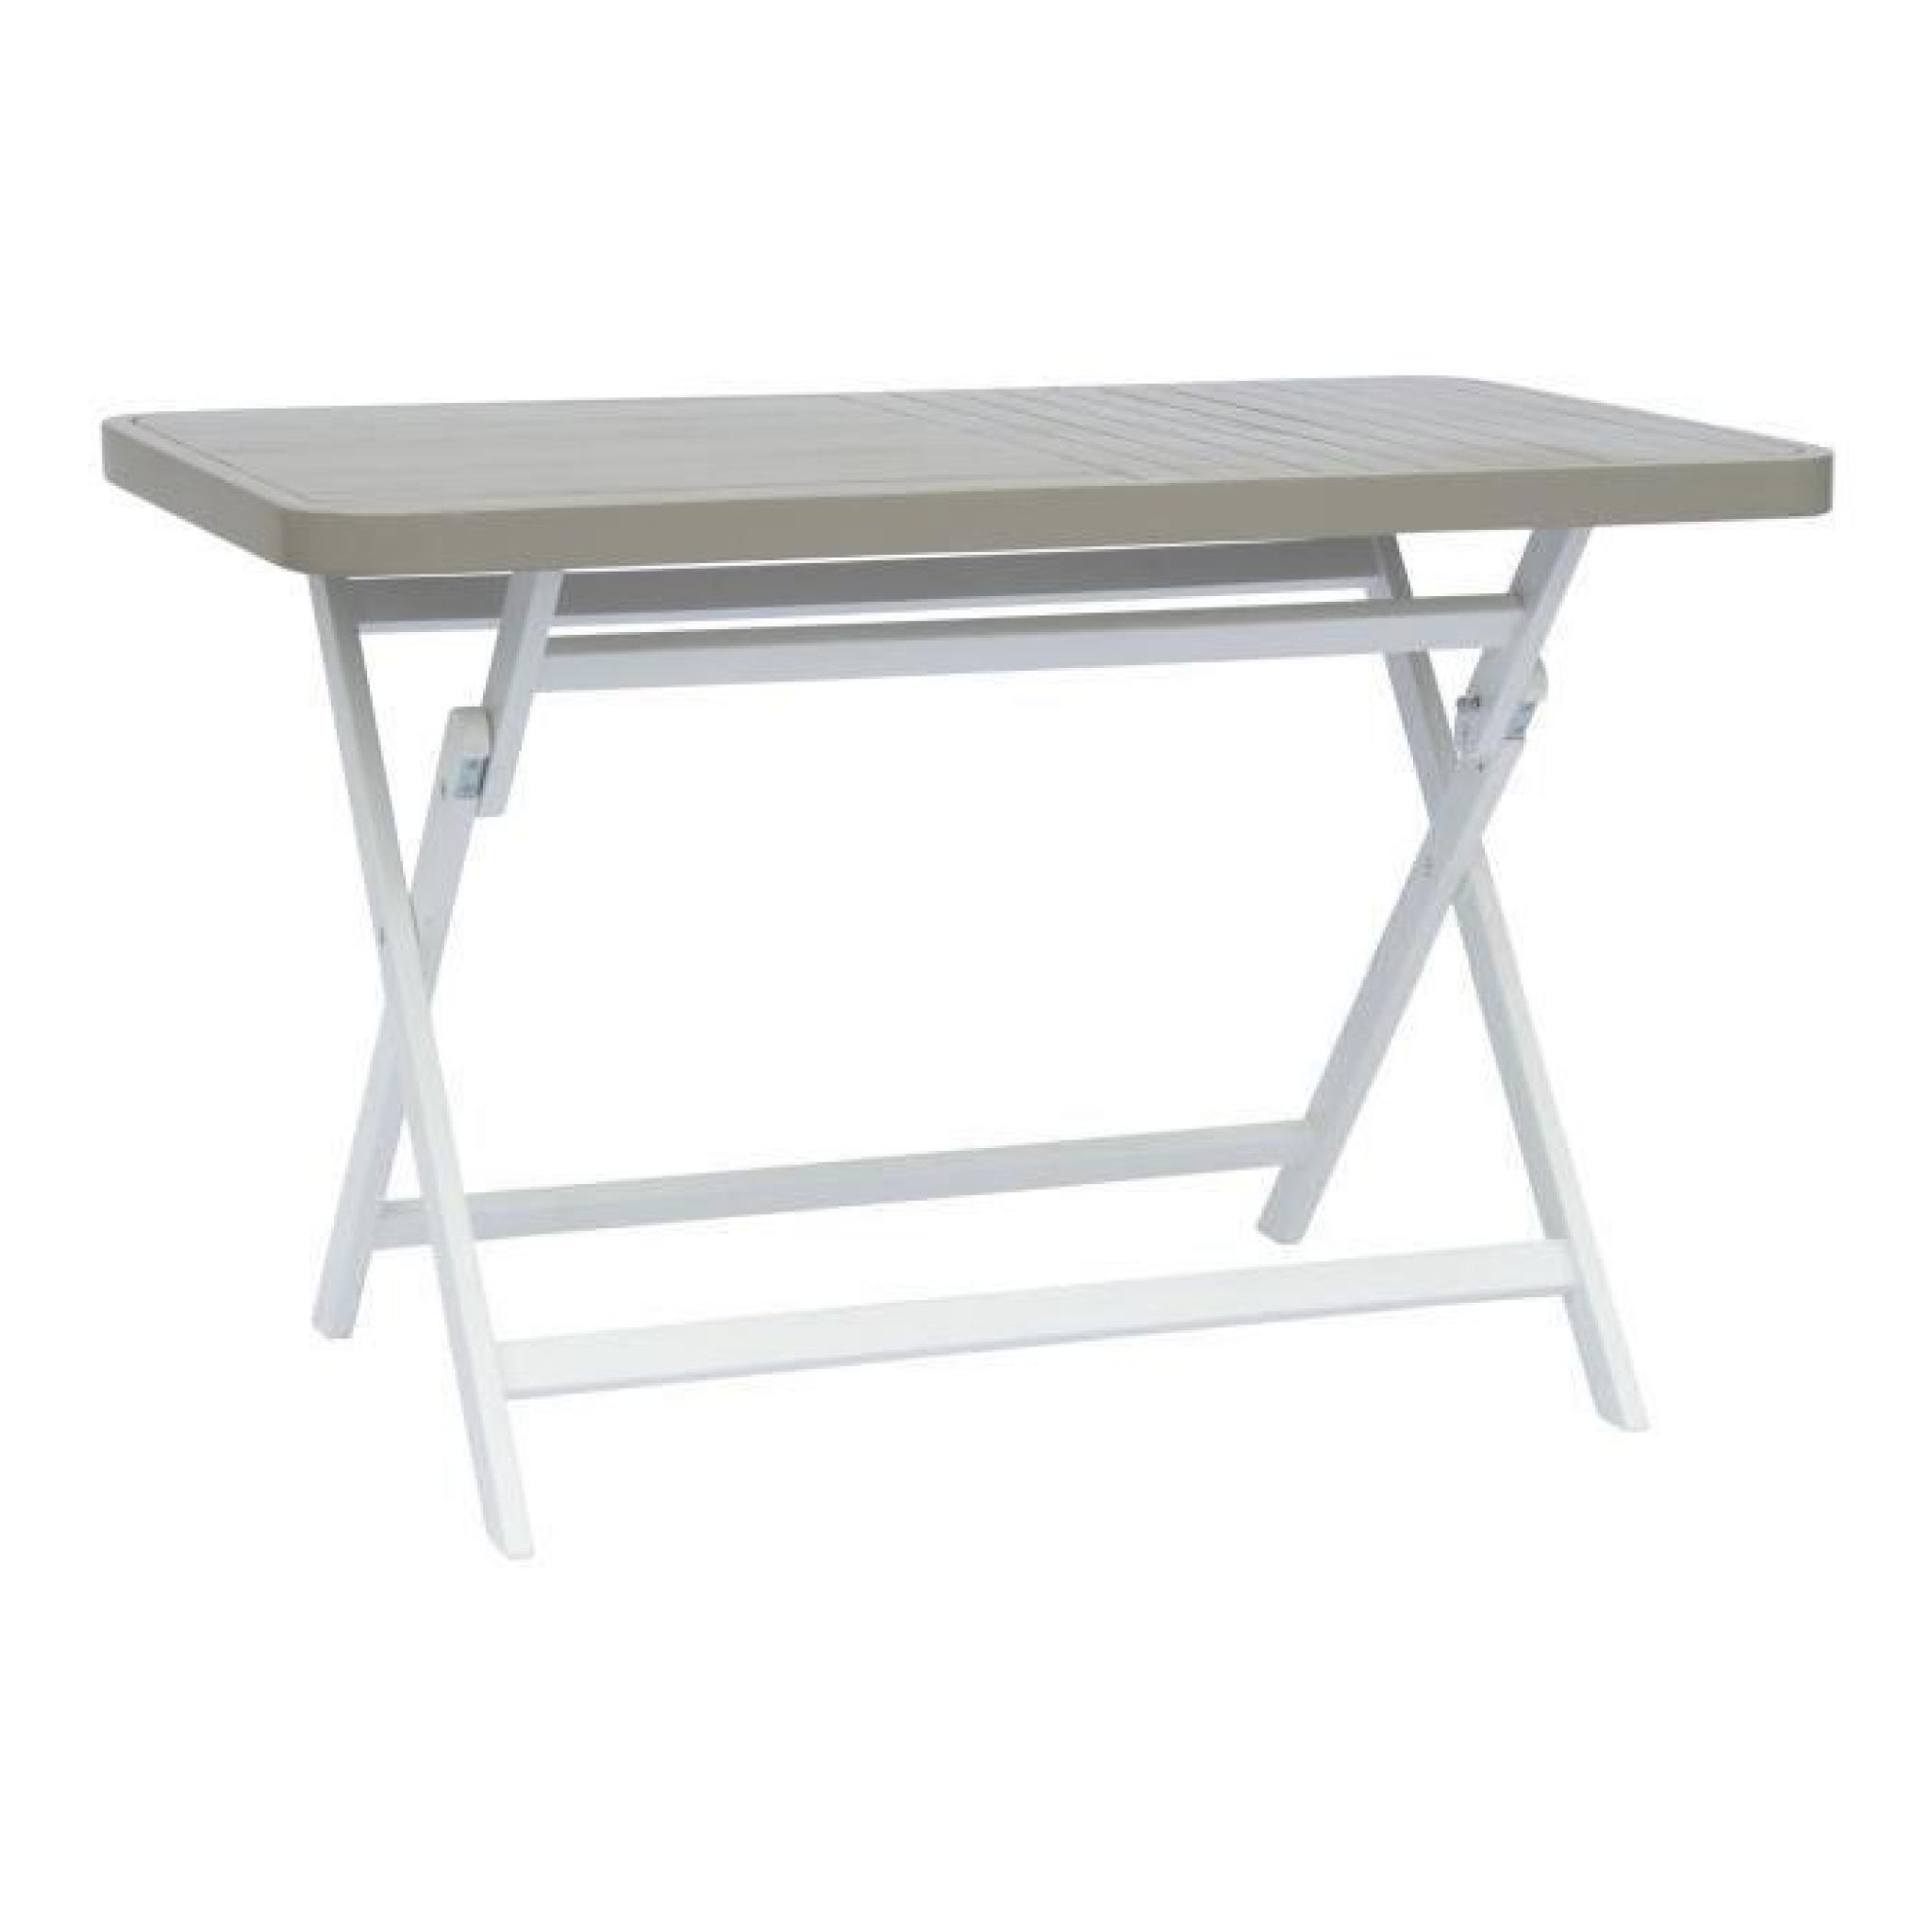 Youk Table de jardin rectangulaire pliable grise - Gris